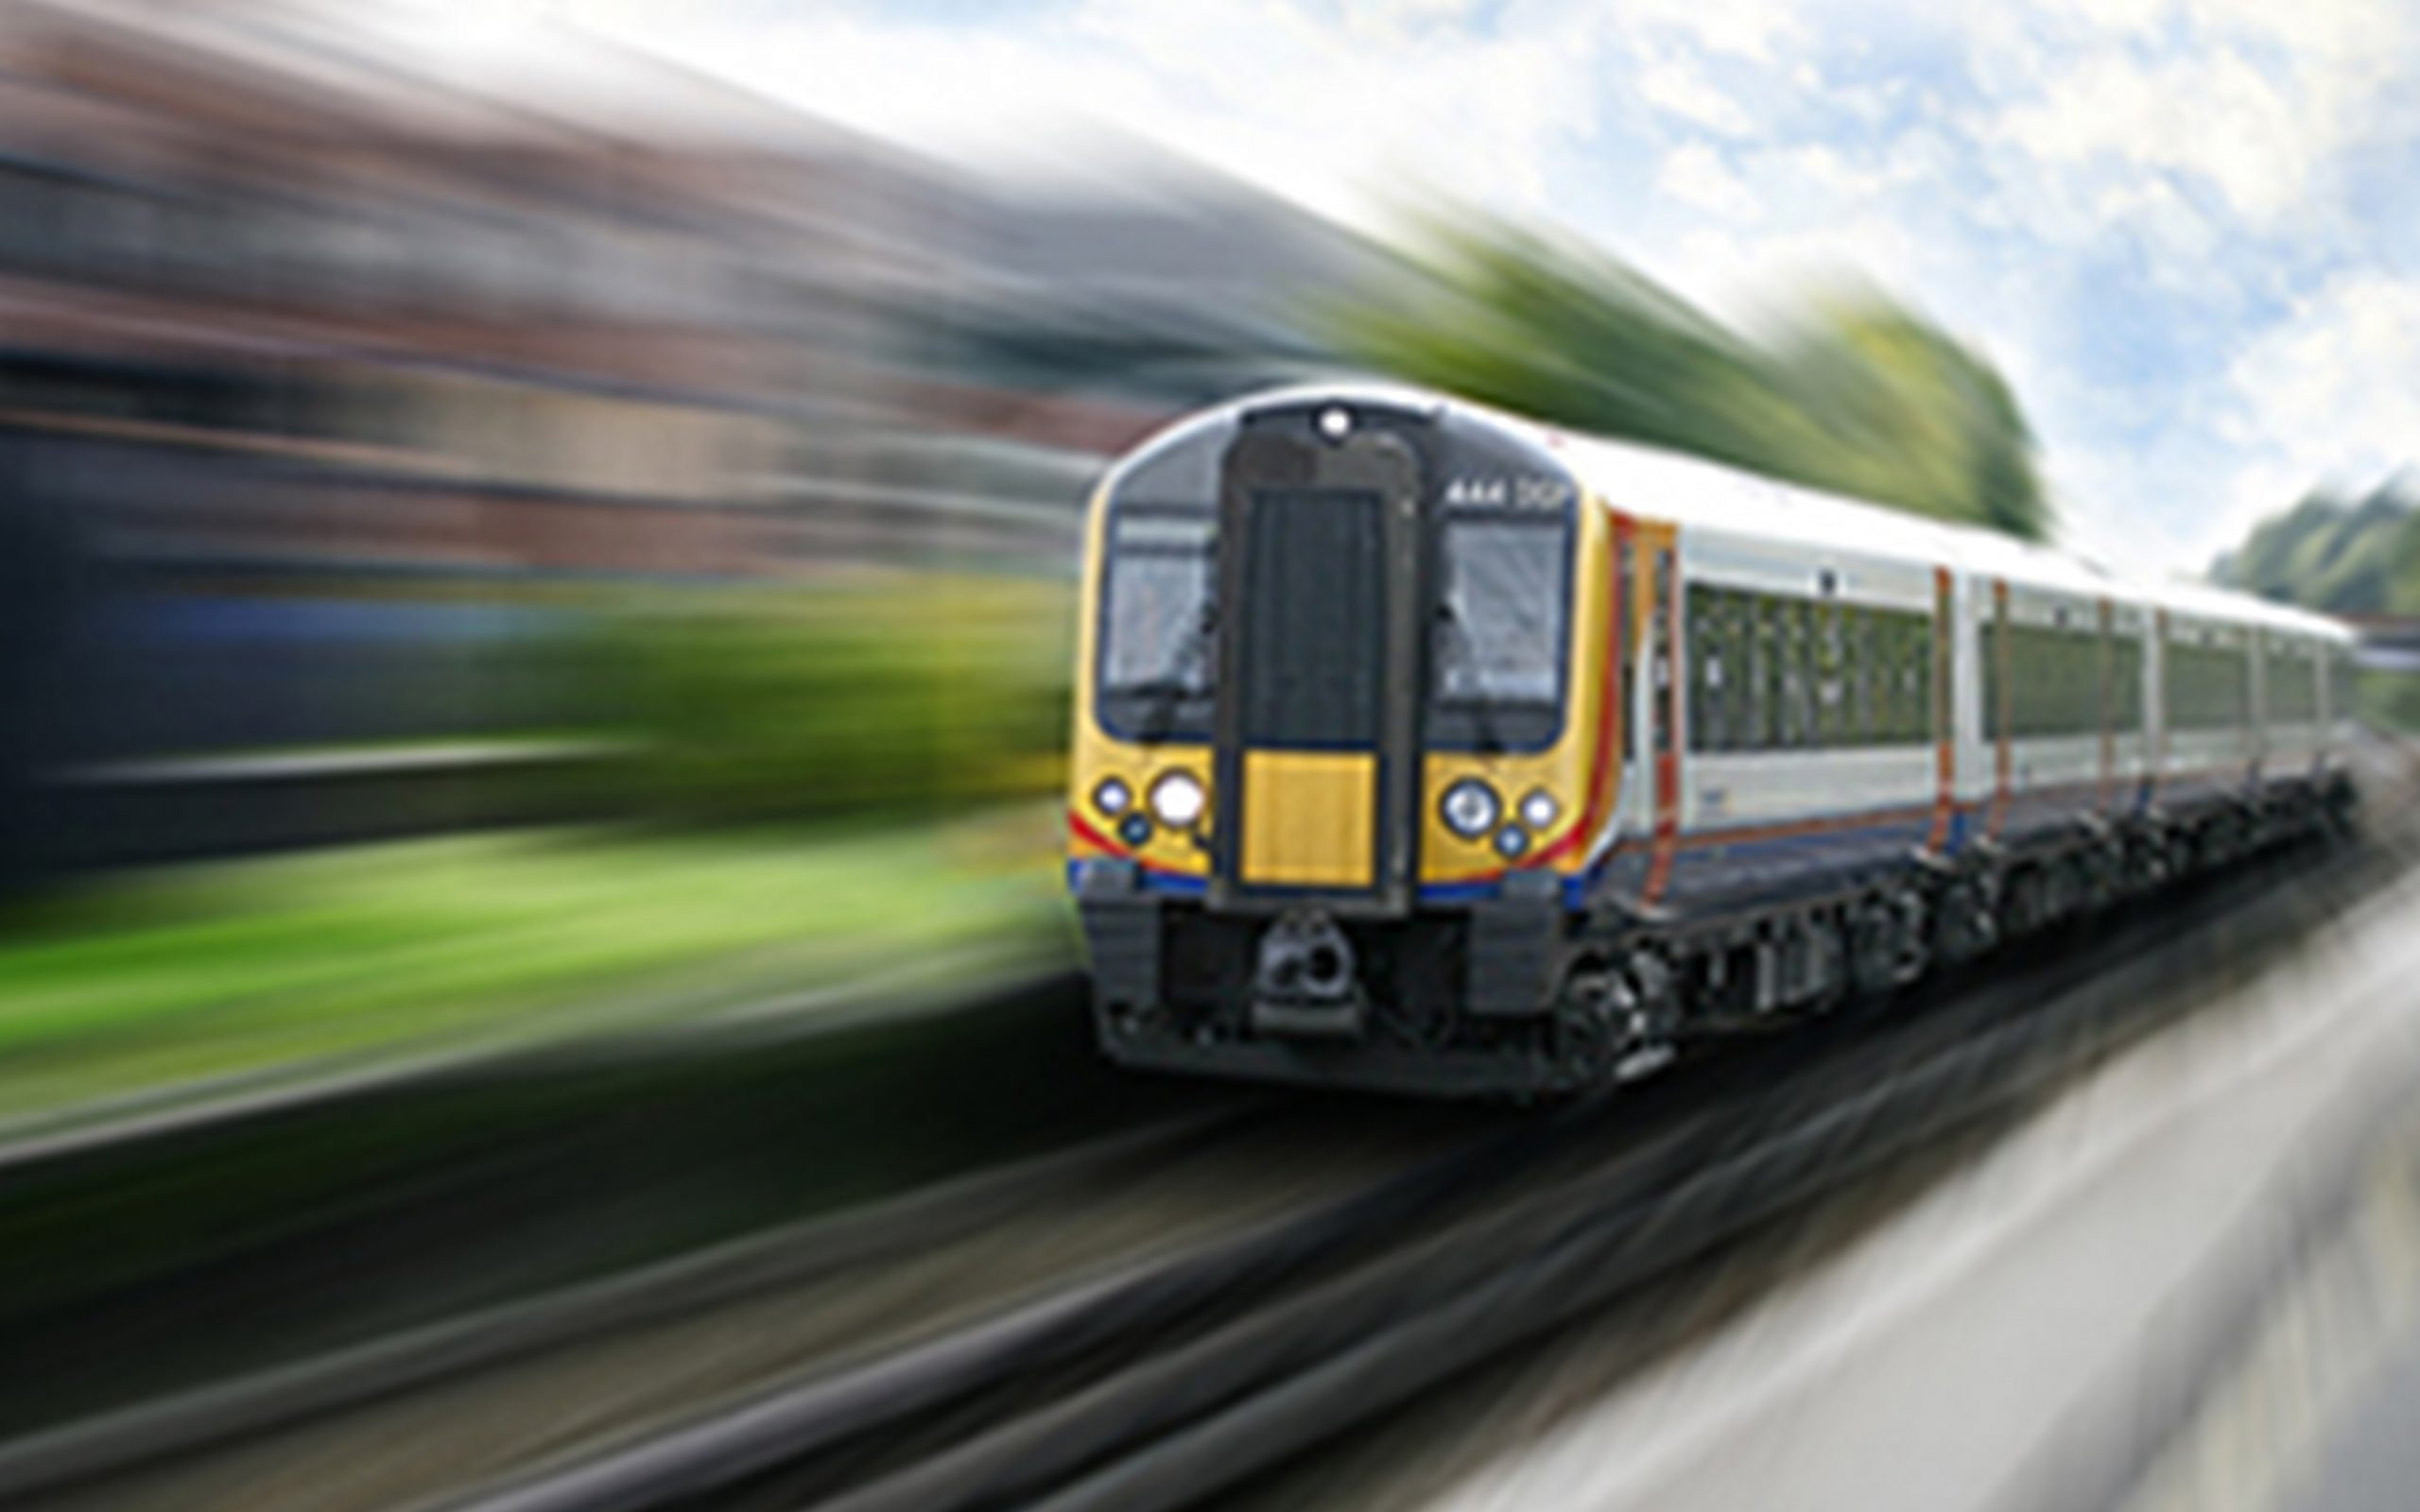 Contracts awarded to local foundation business for Cross River Rail